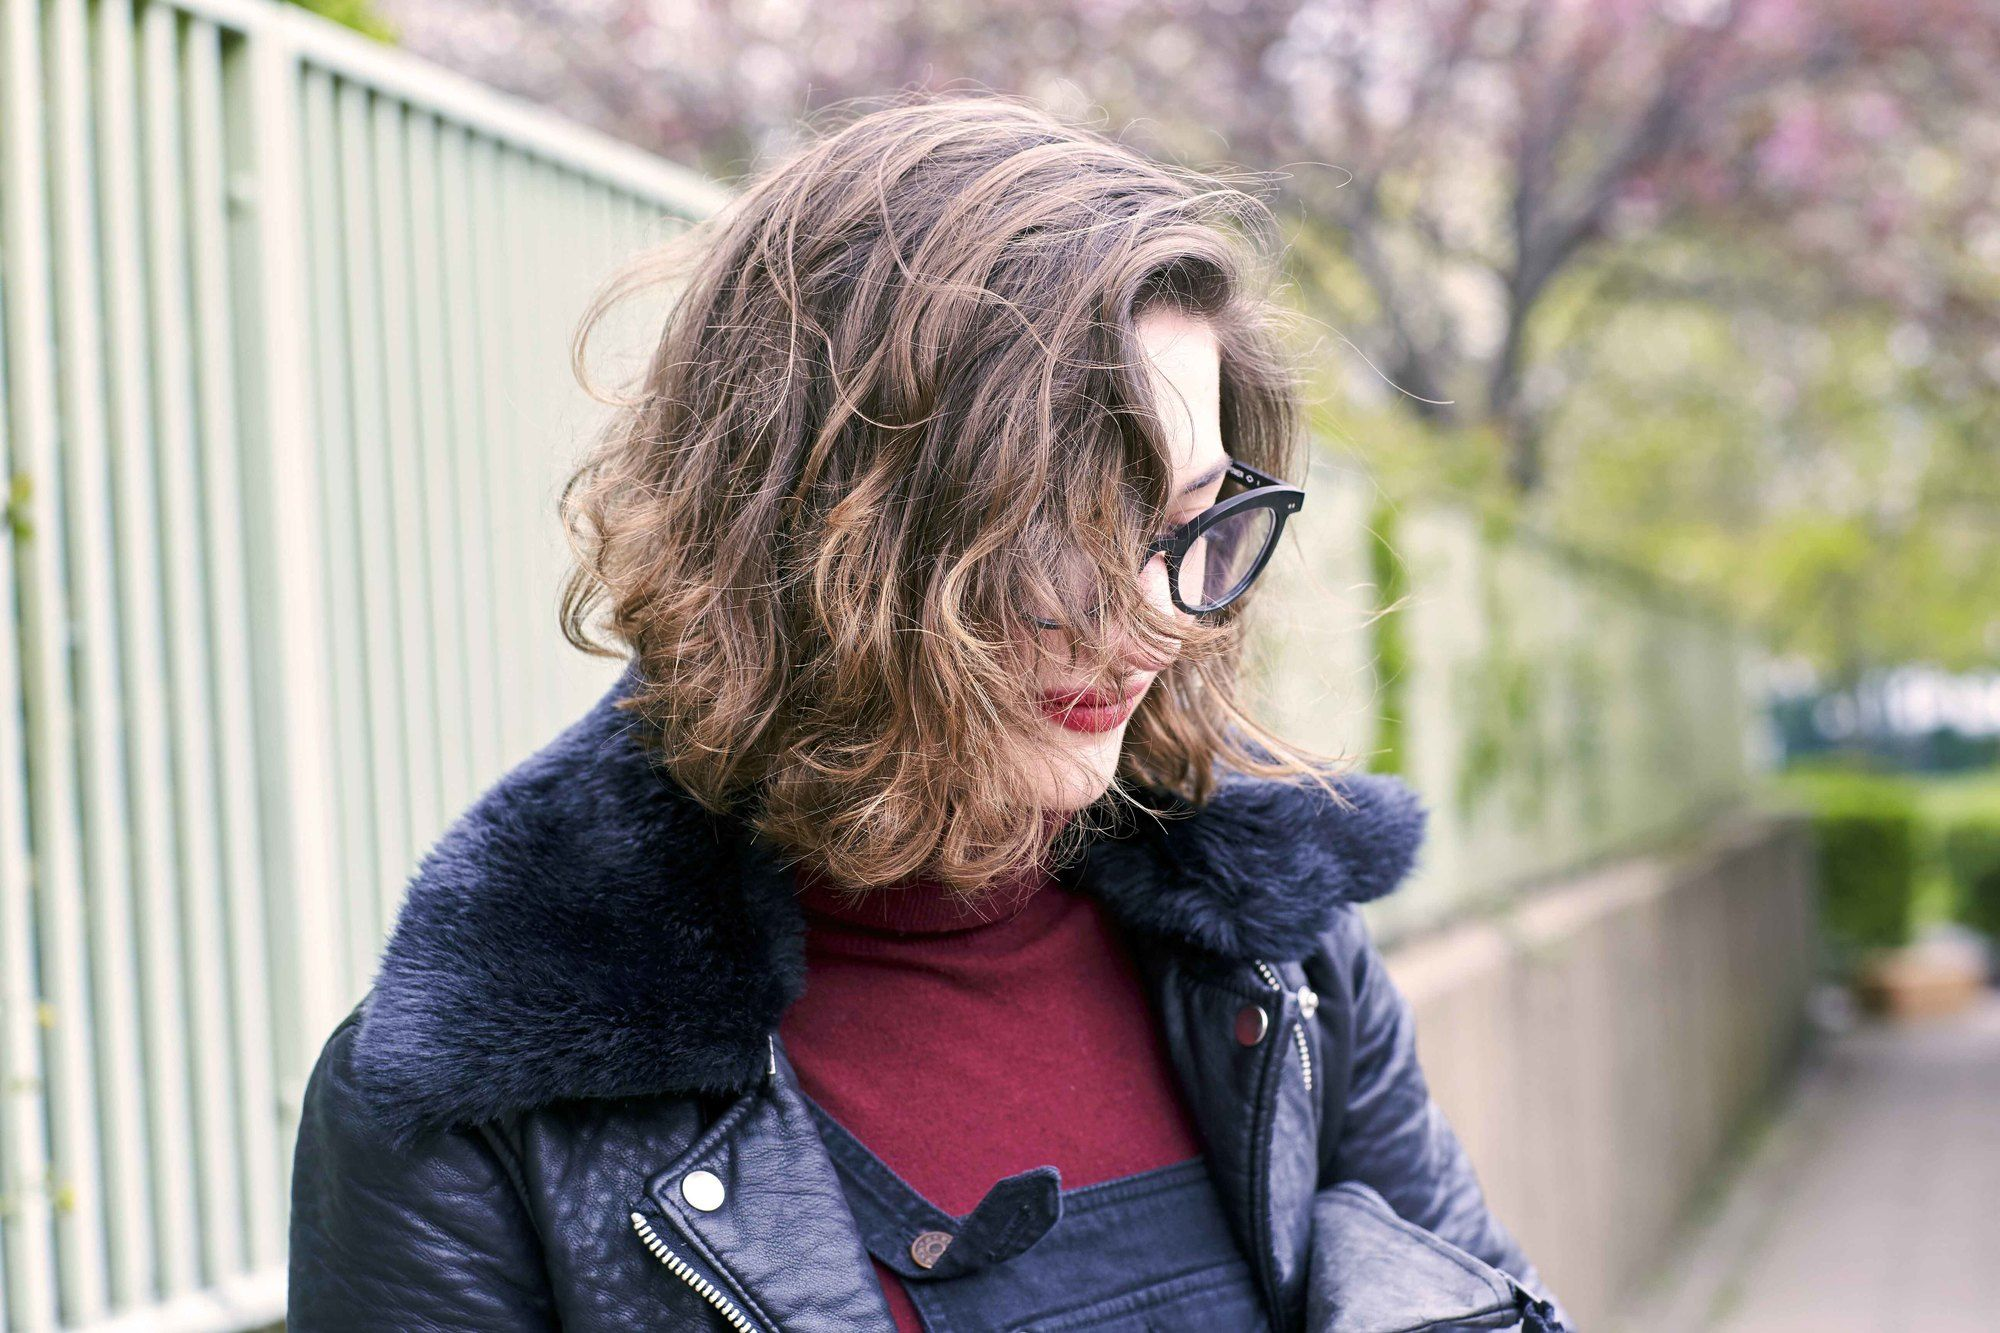 Beach Waves Short Hair: How to Get the Look